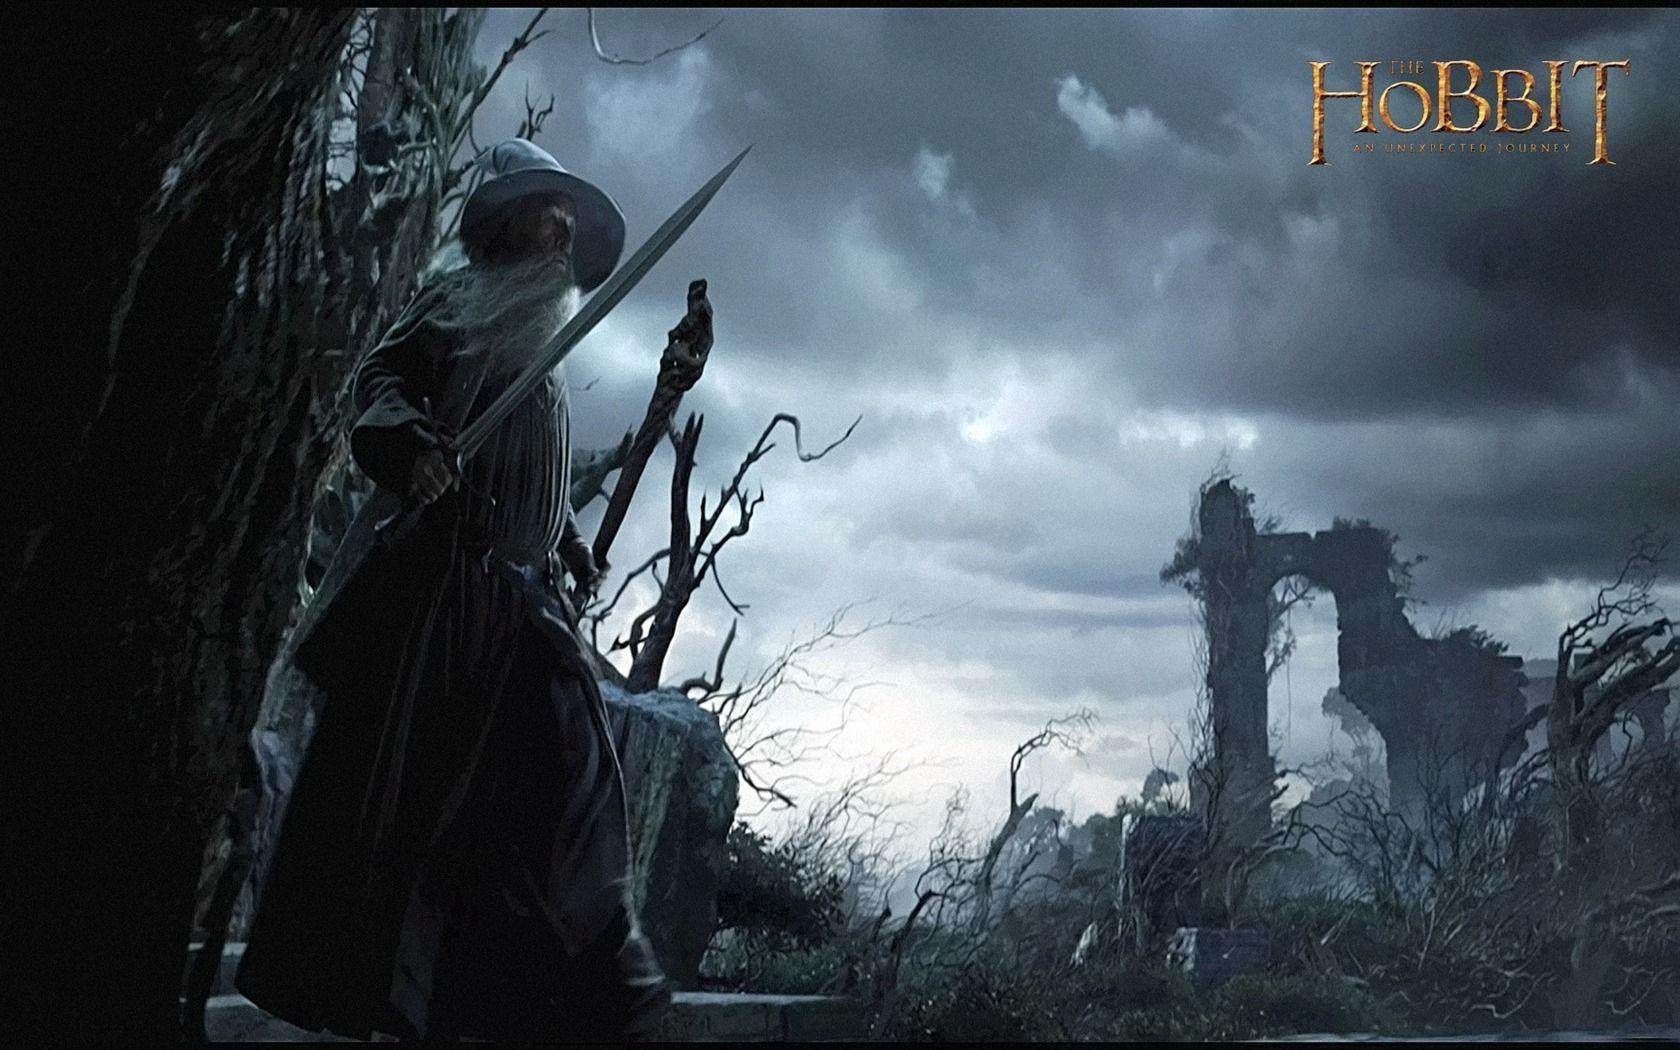 The Hobbit Movie Wallpapers - Wallpaper Cave